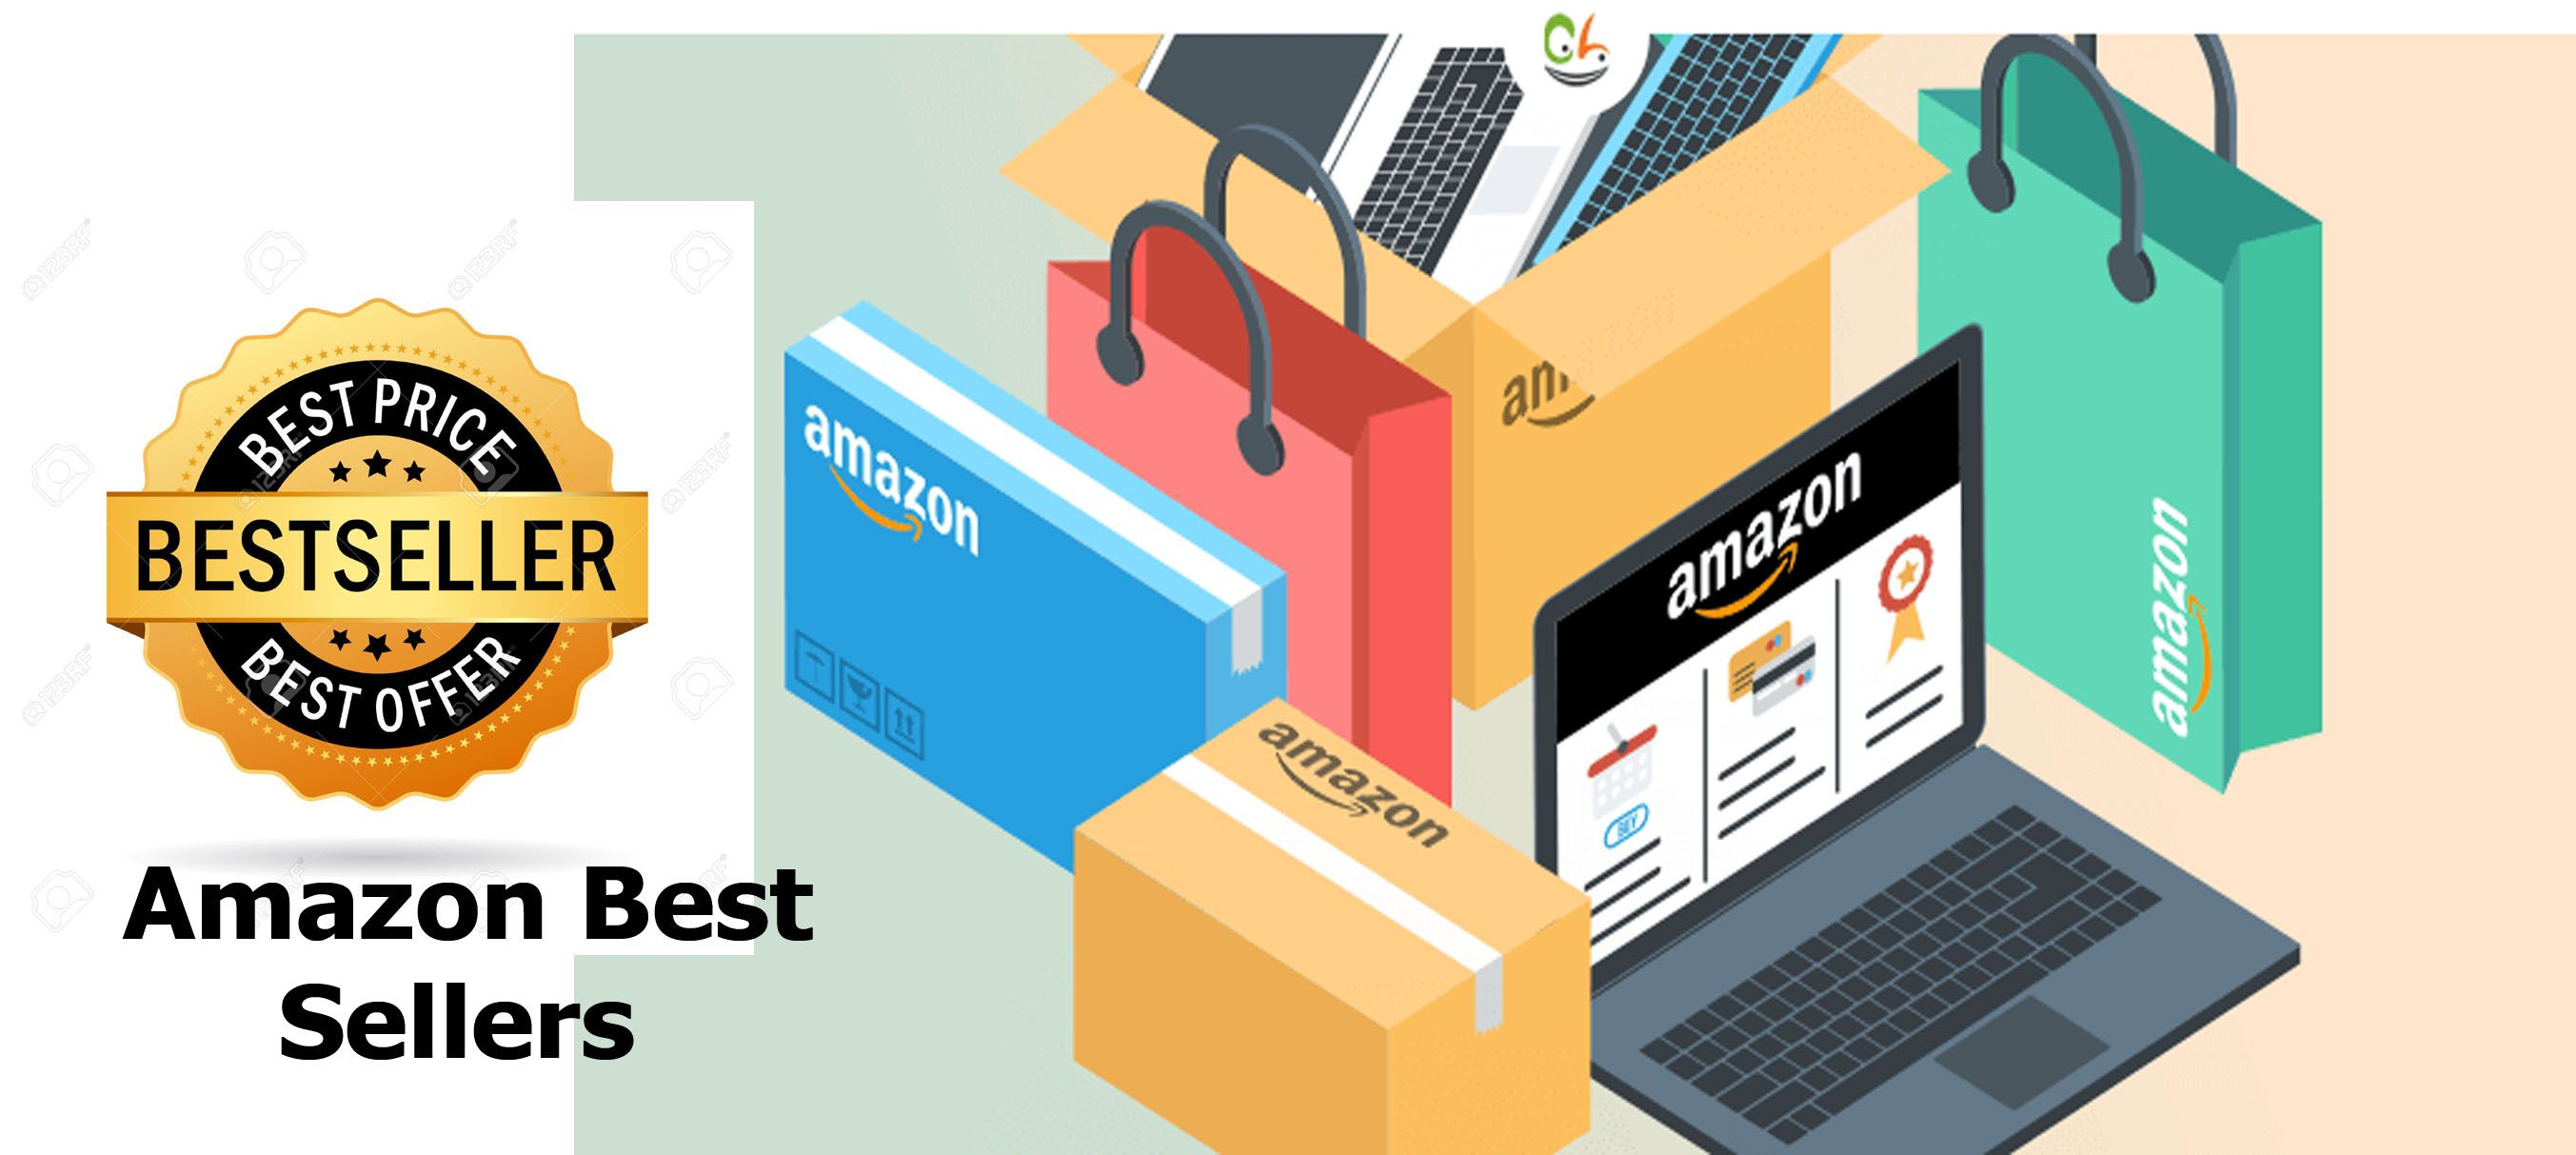 Amazon Best Sellers Amazon Best Sellers Products Best Sellers